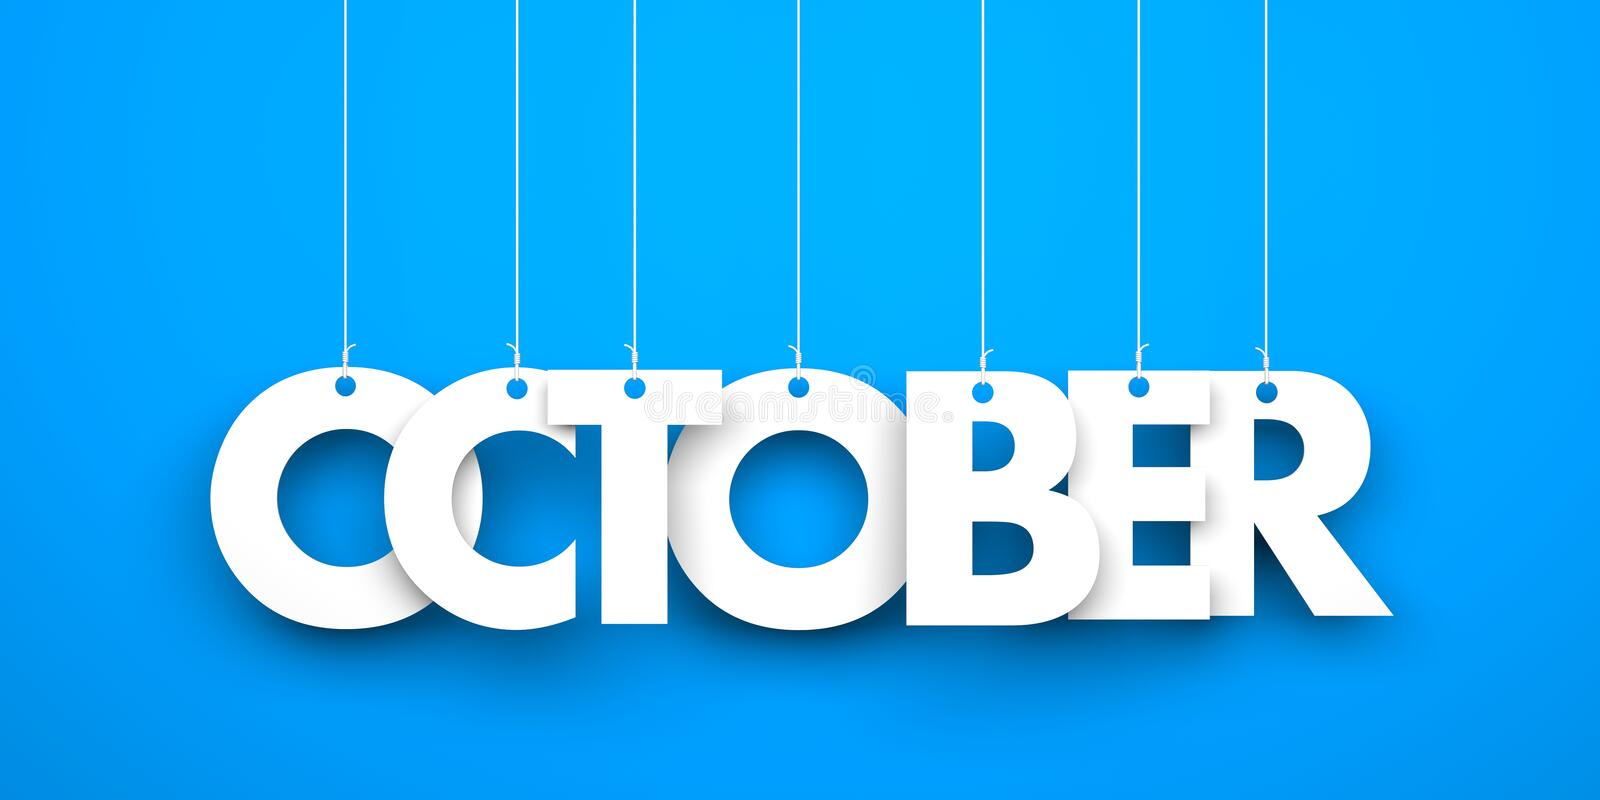 October. Text hanging on the strings royalty free illustration